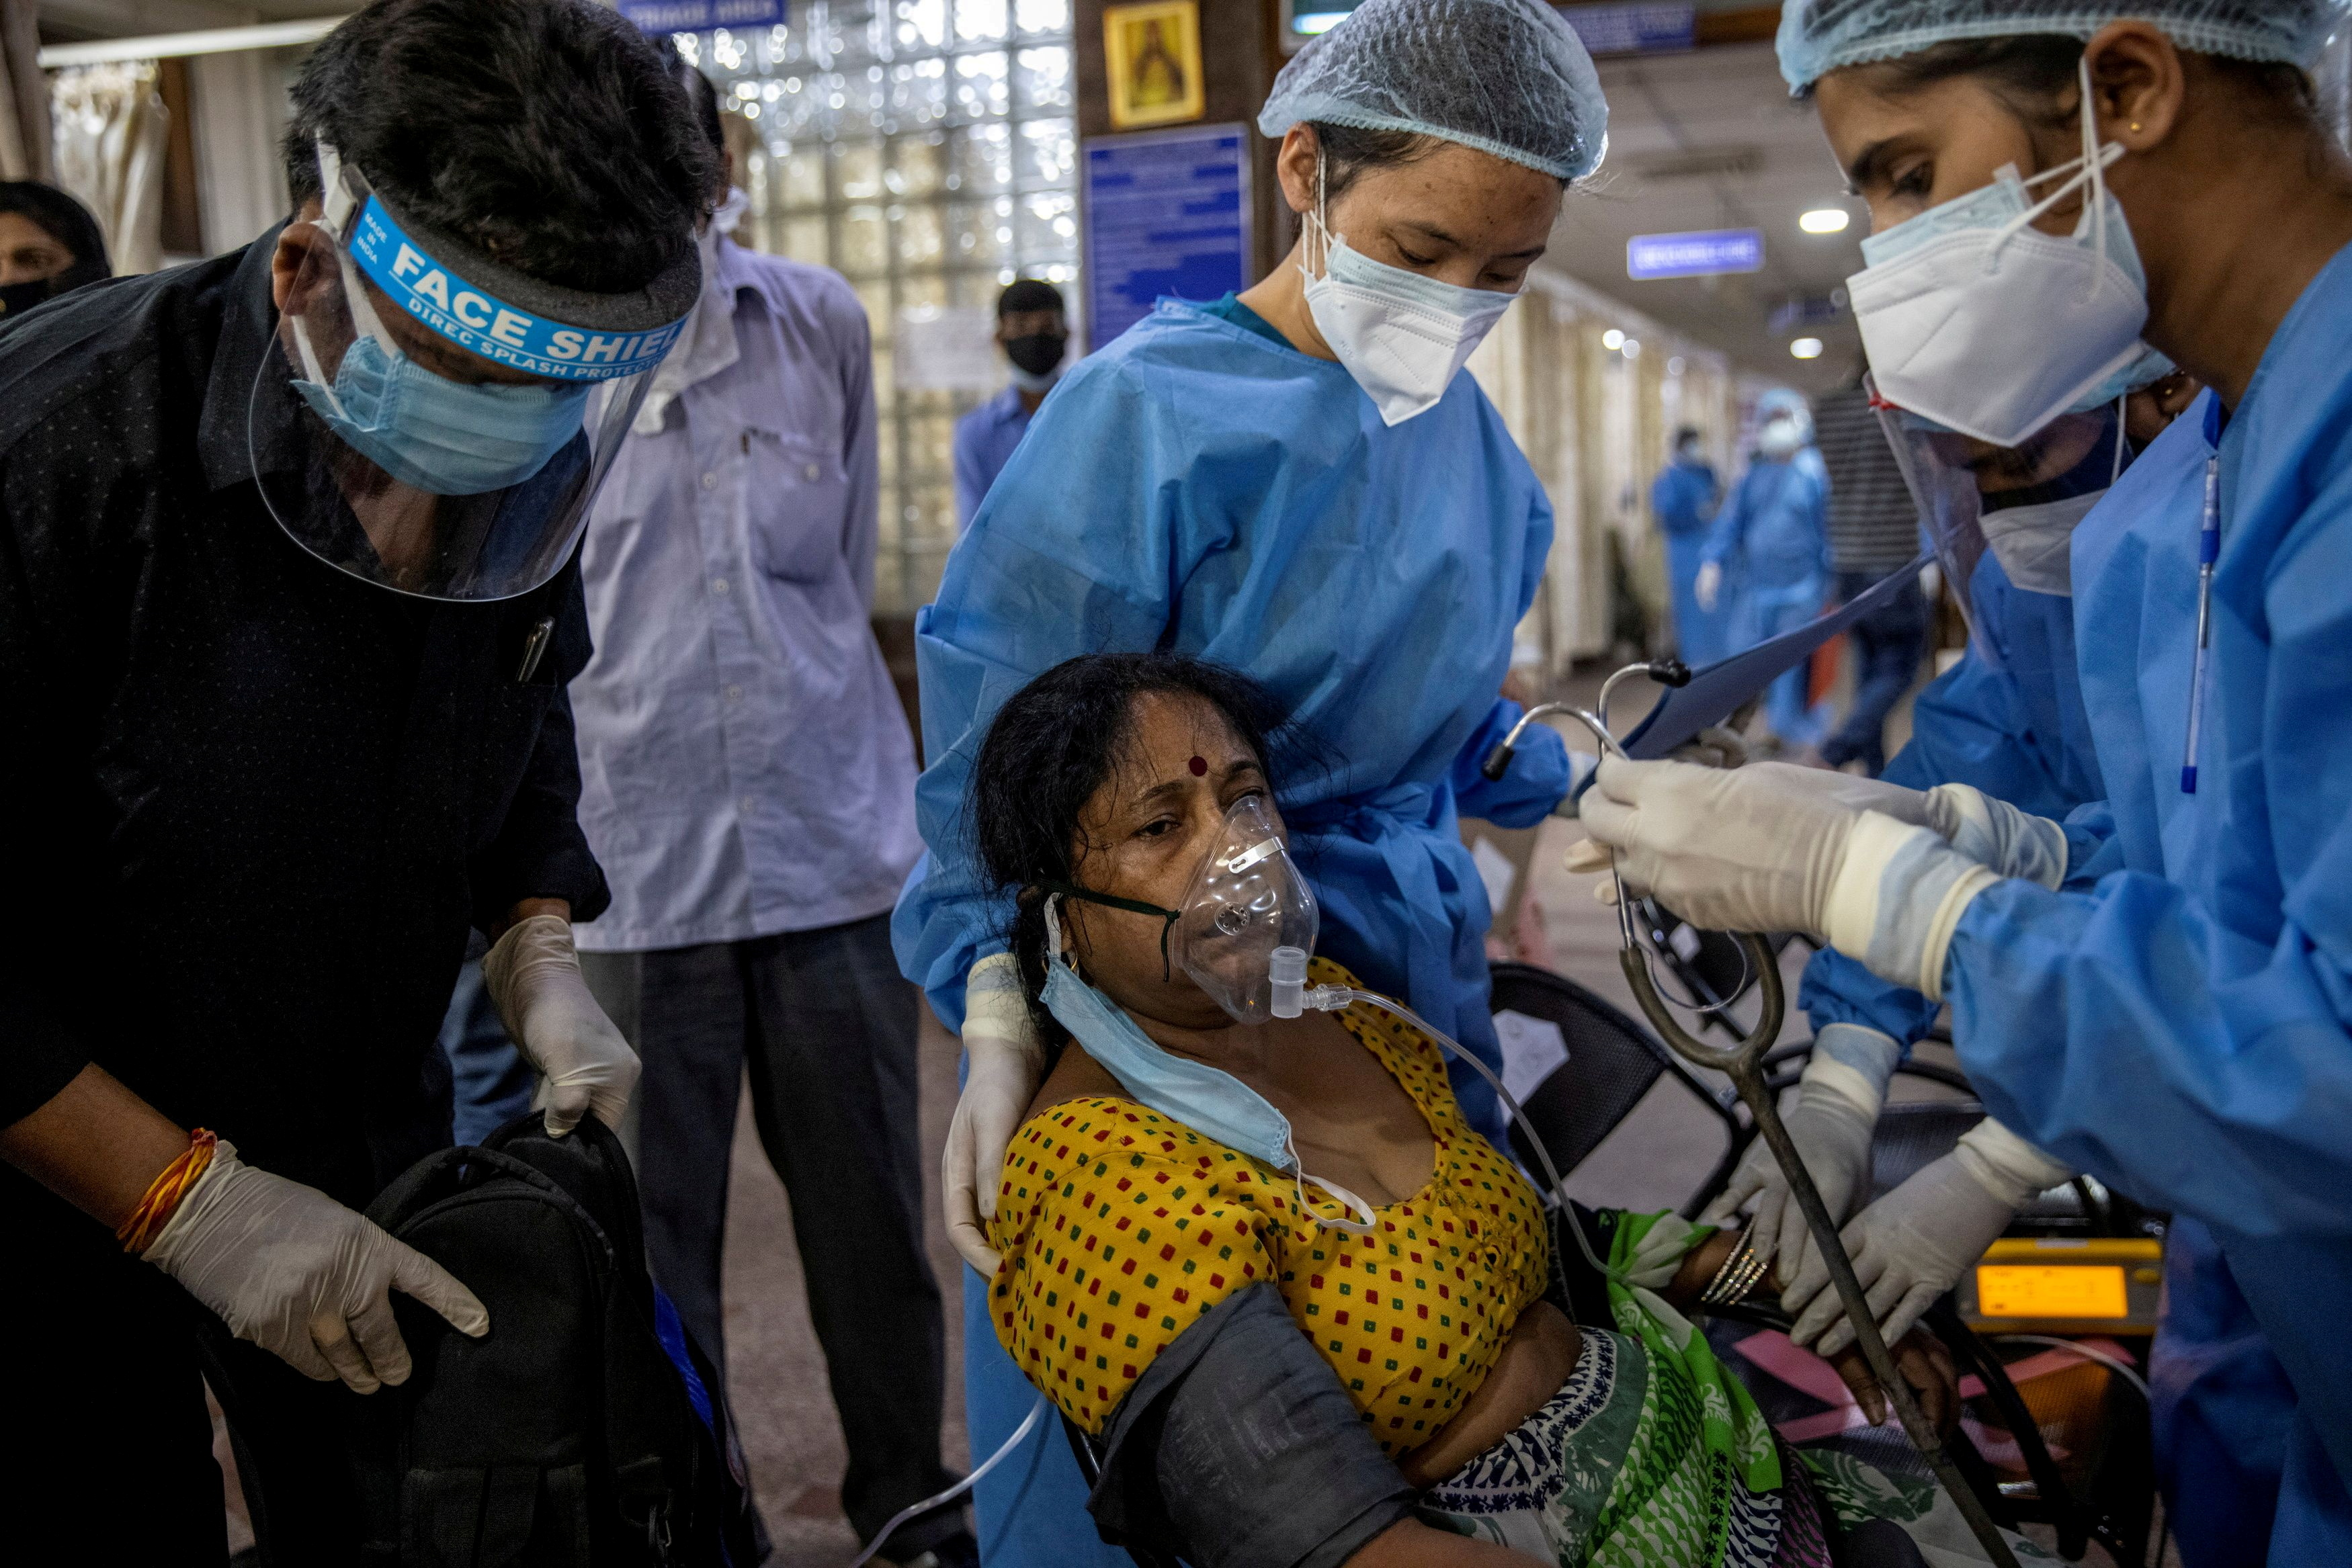 A patient suffering from the coronavirus receives treatment inside the emergency ward at Holy Family hospital in New Delhi, April 29. REUTERS/Danish Siddiqui/File Photo